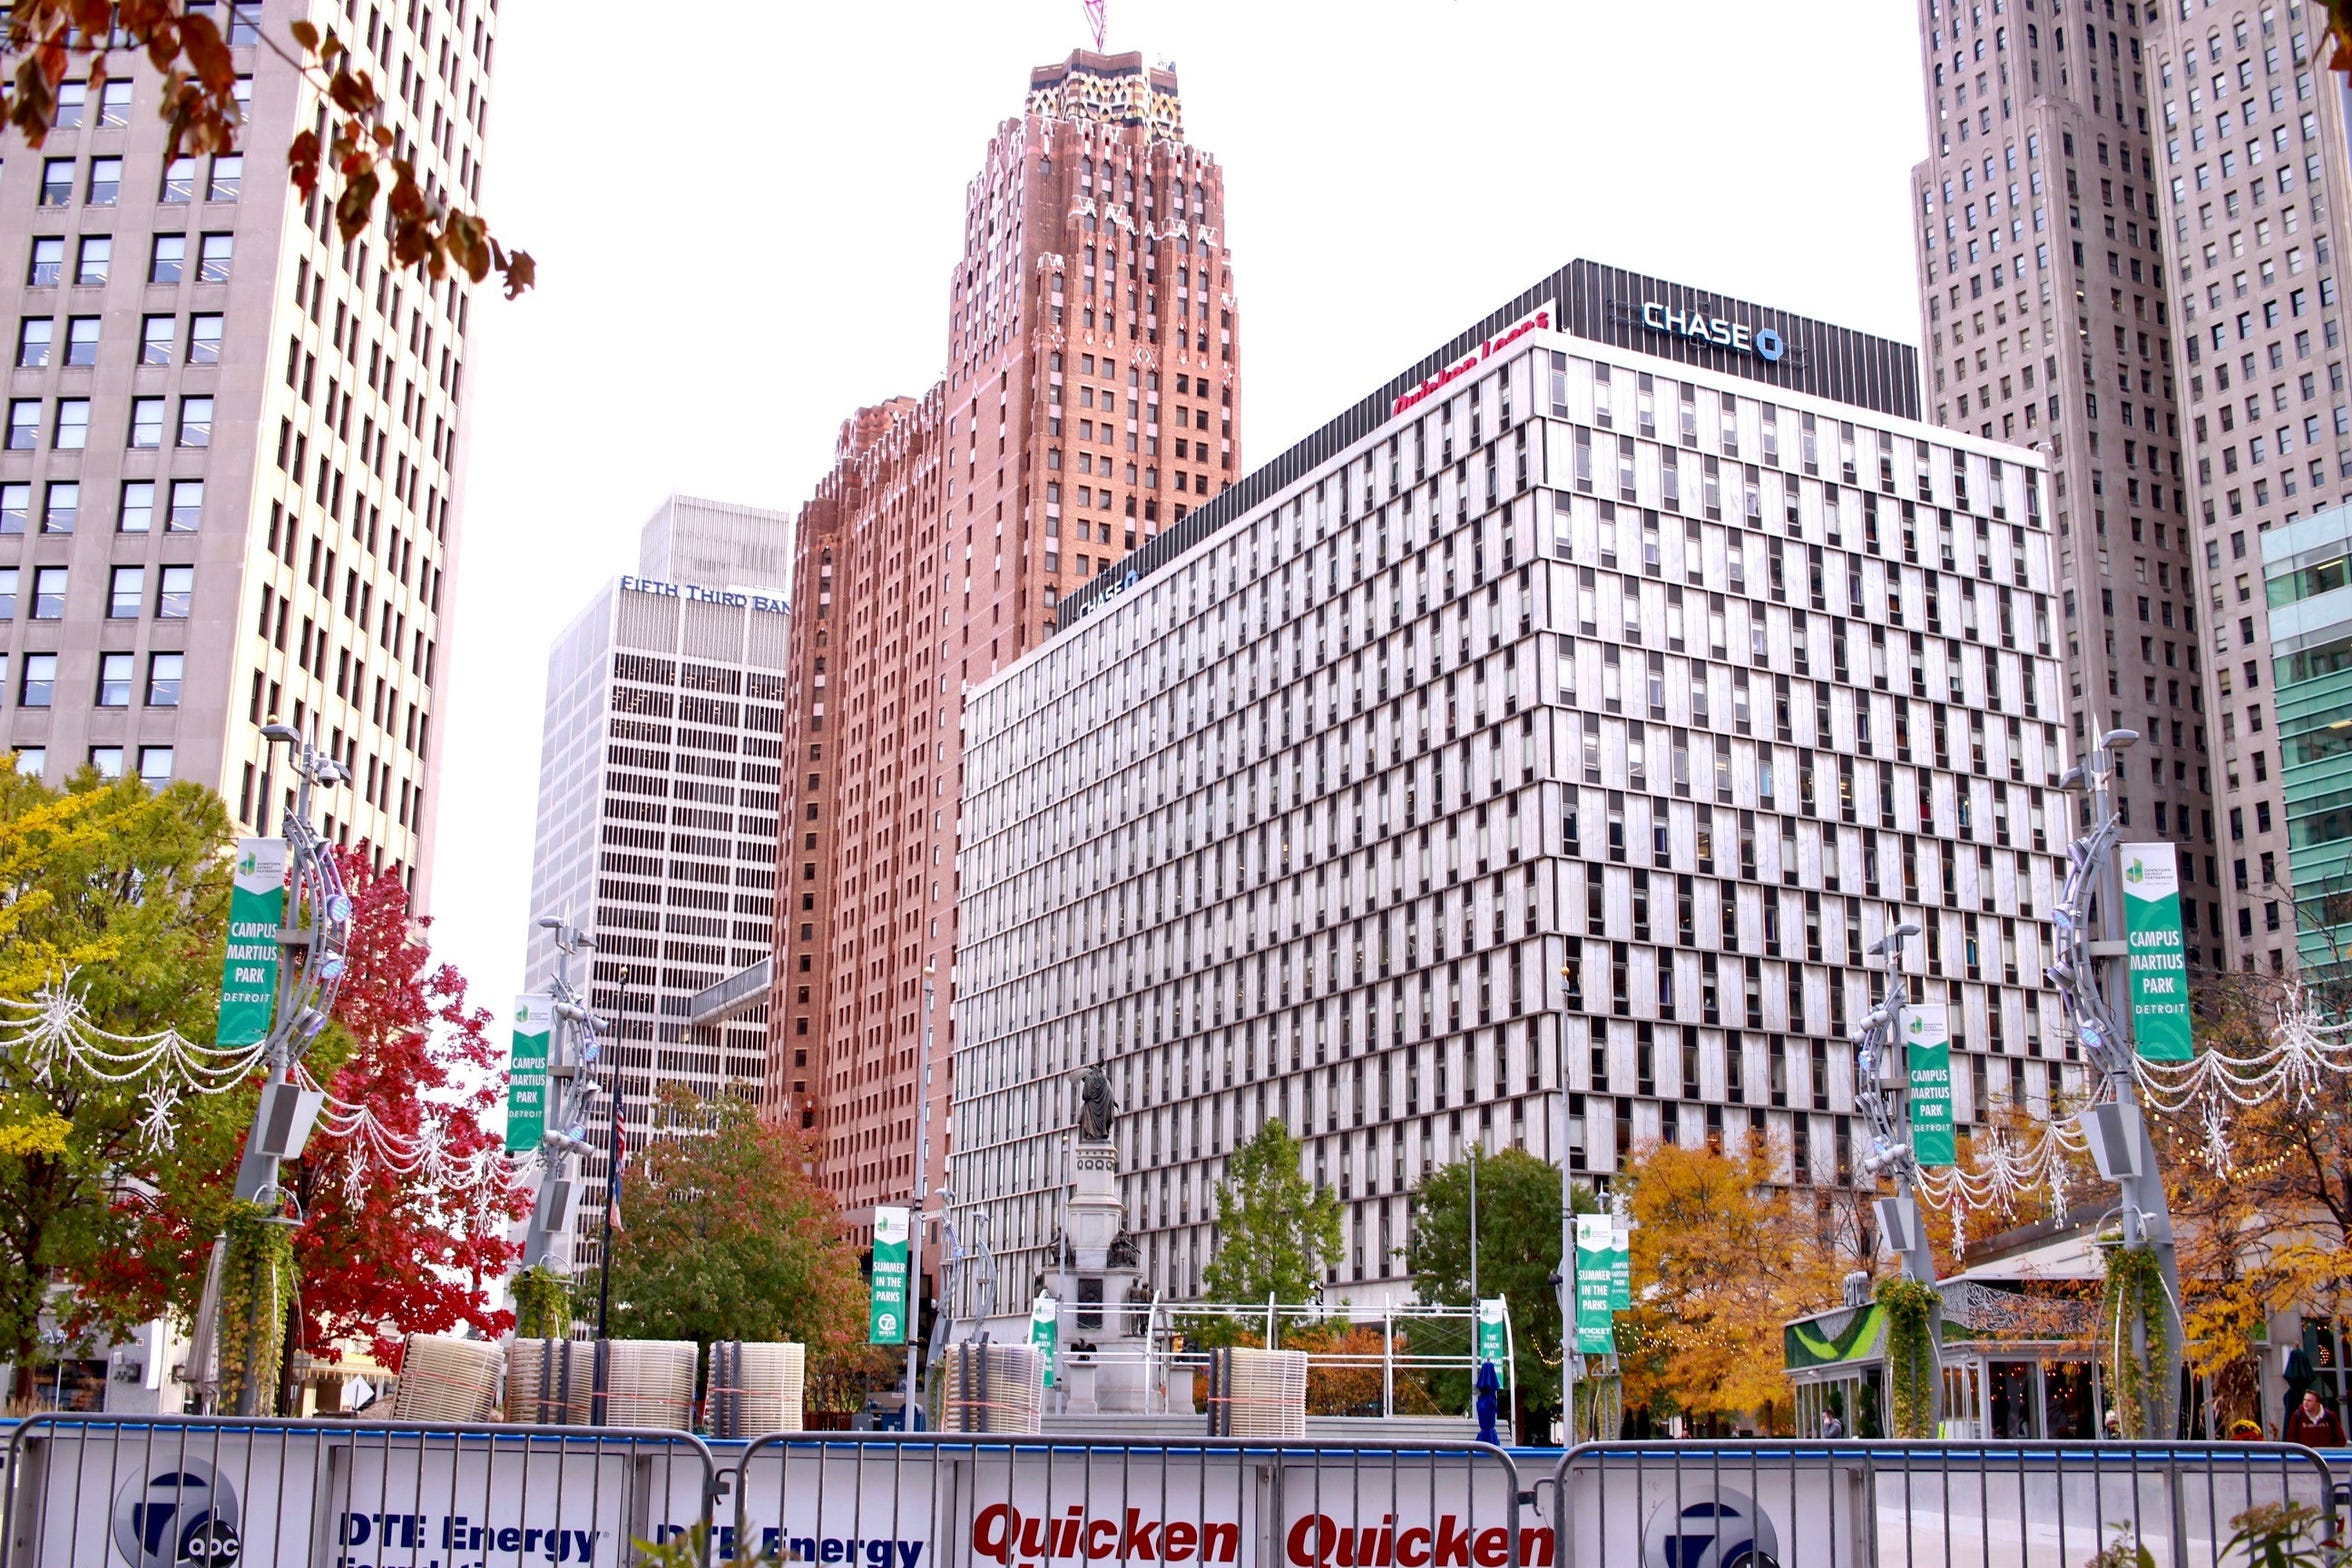 Campus Martius Park in downtown Detroit, looking south toward Chase Tower. The Gilbert property now sits in an opportunity zone, even though the census tract should have been ineligible for the program because of its wealth.